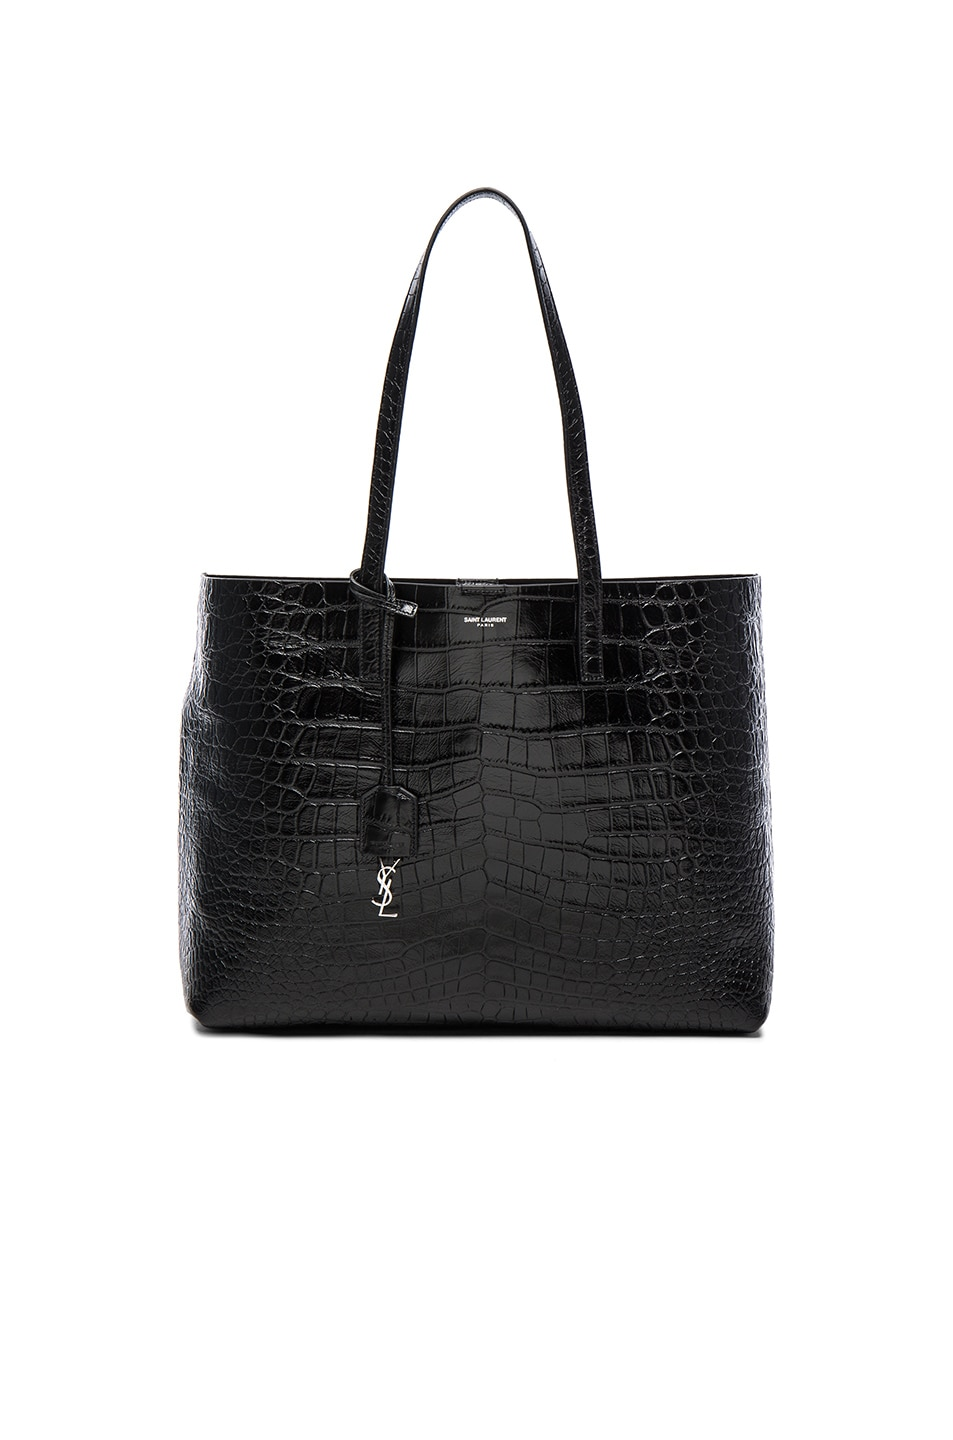 Image 1 of Saint Laurent Large Croc Embossed East West Shopping Bag in Black